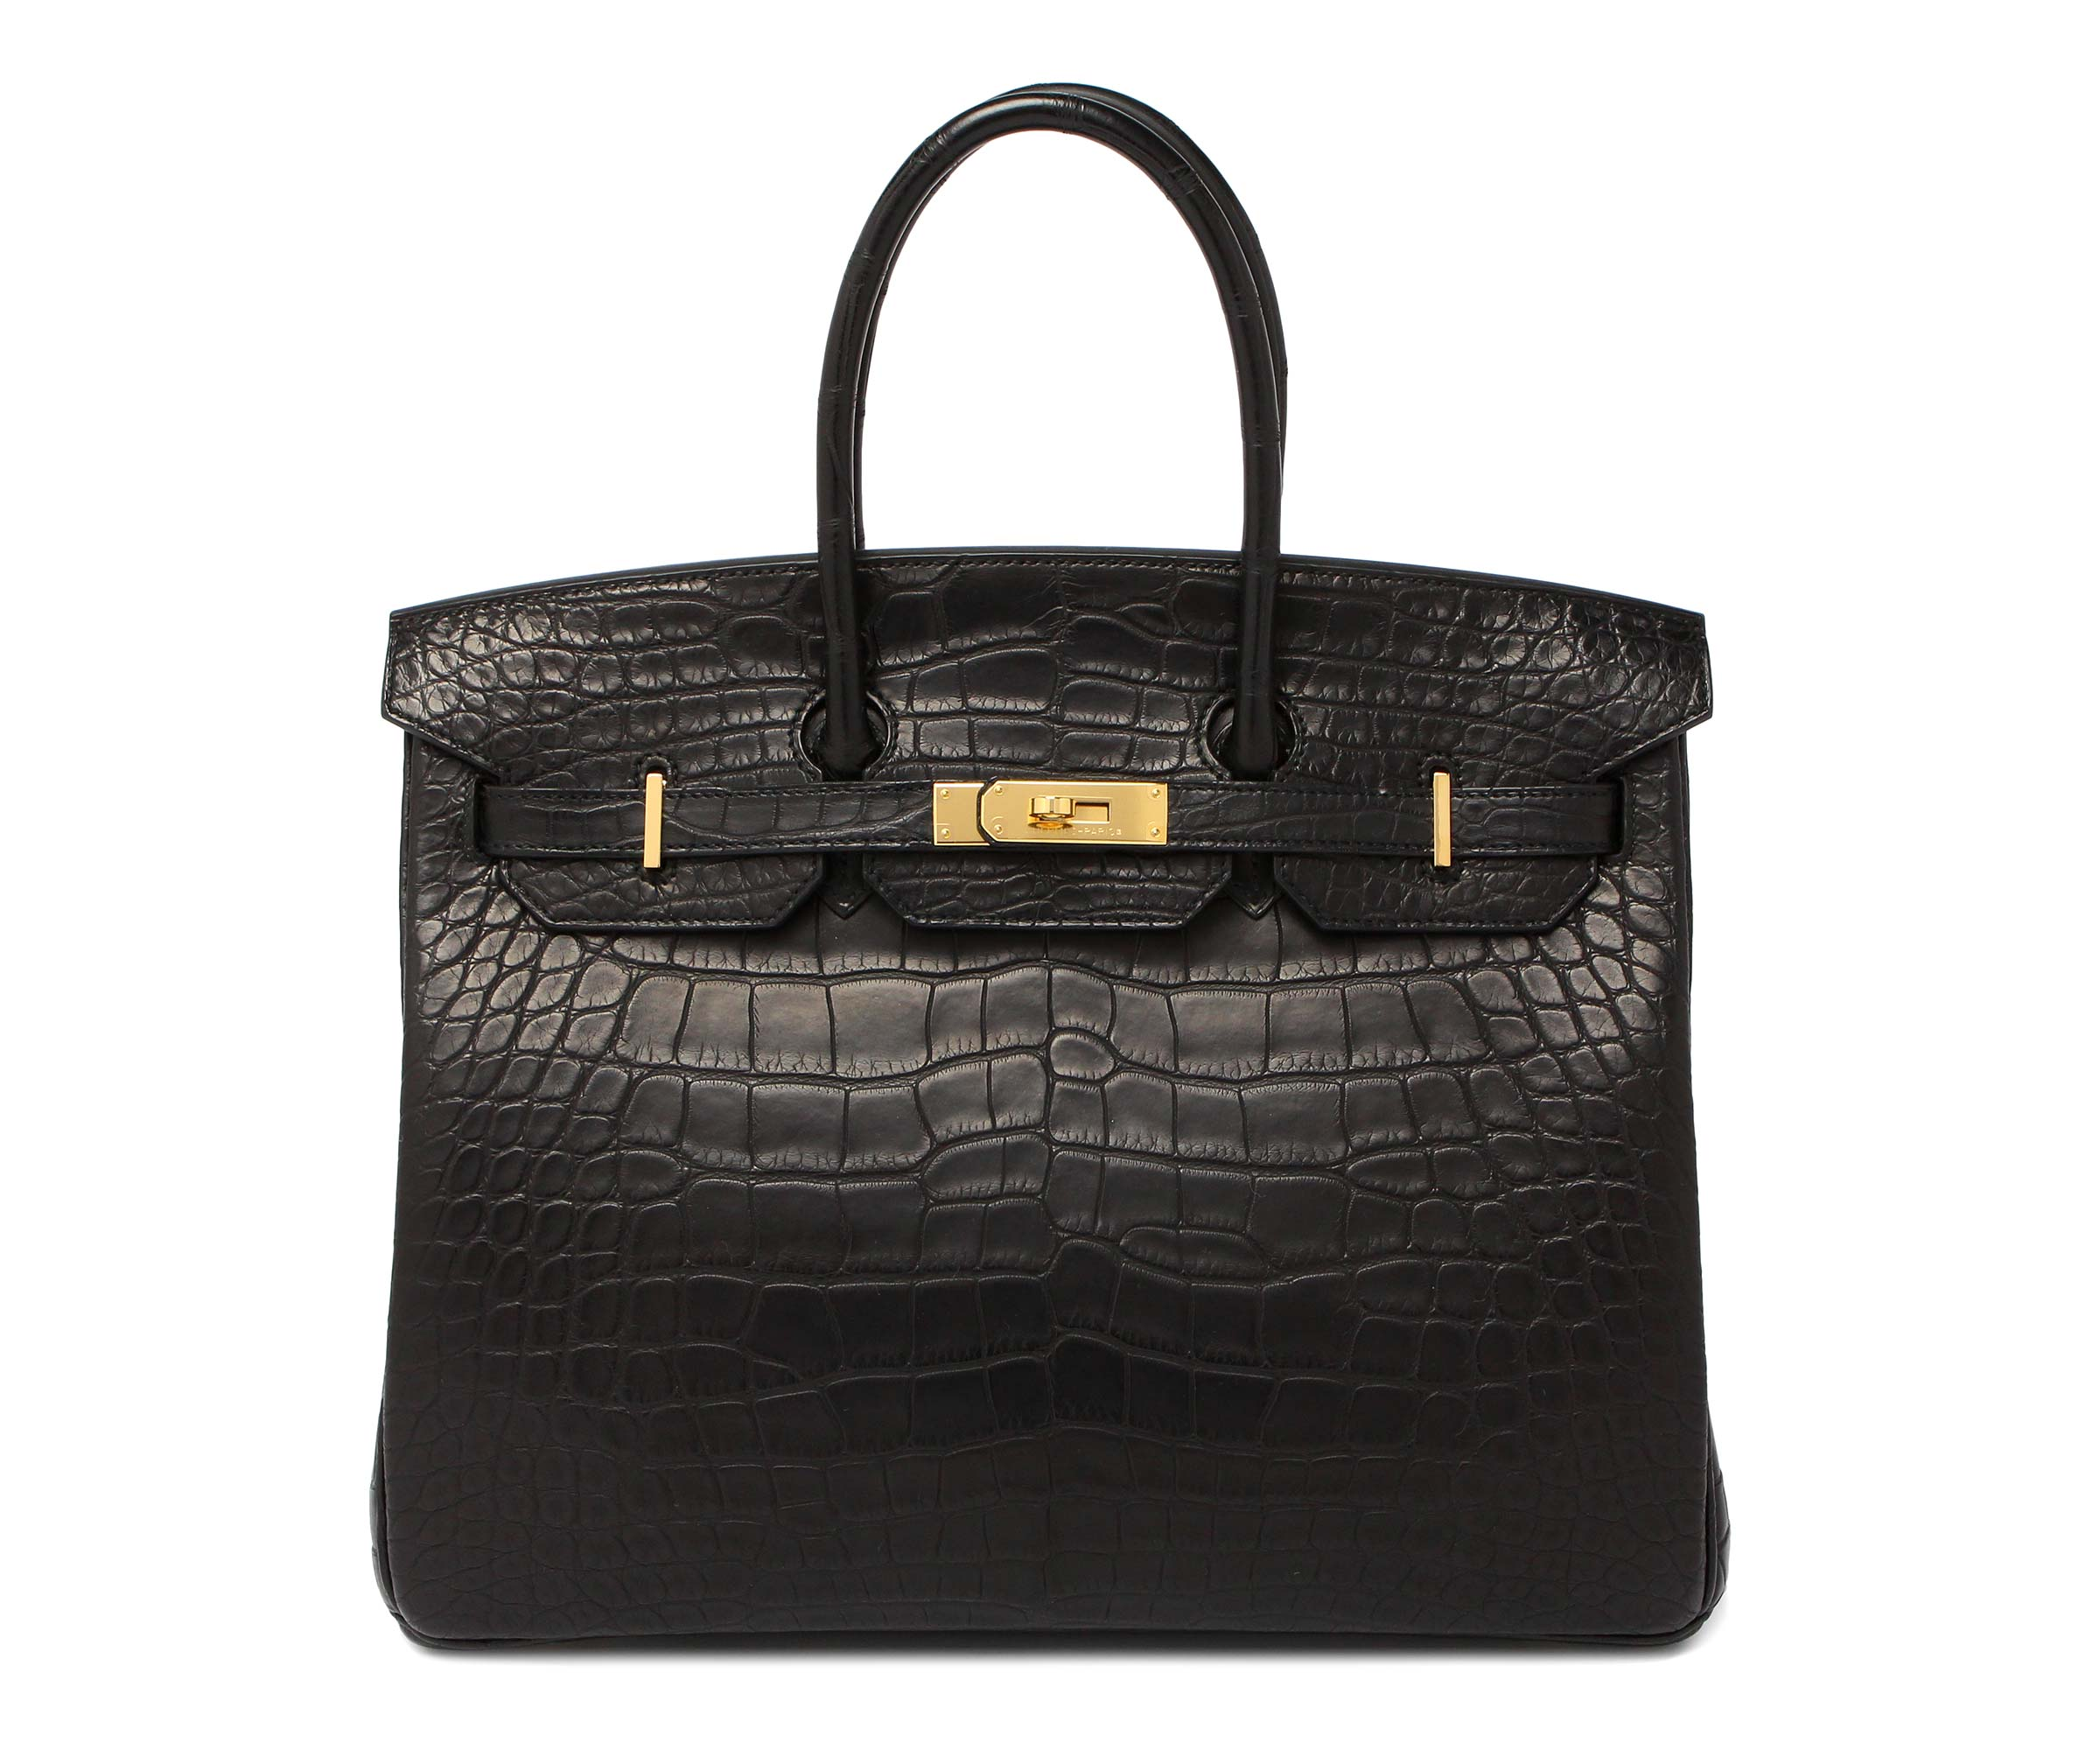 Hermes Birkin Black Matt Alligator with Gold